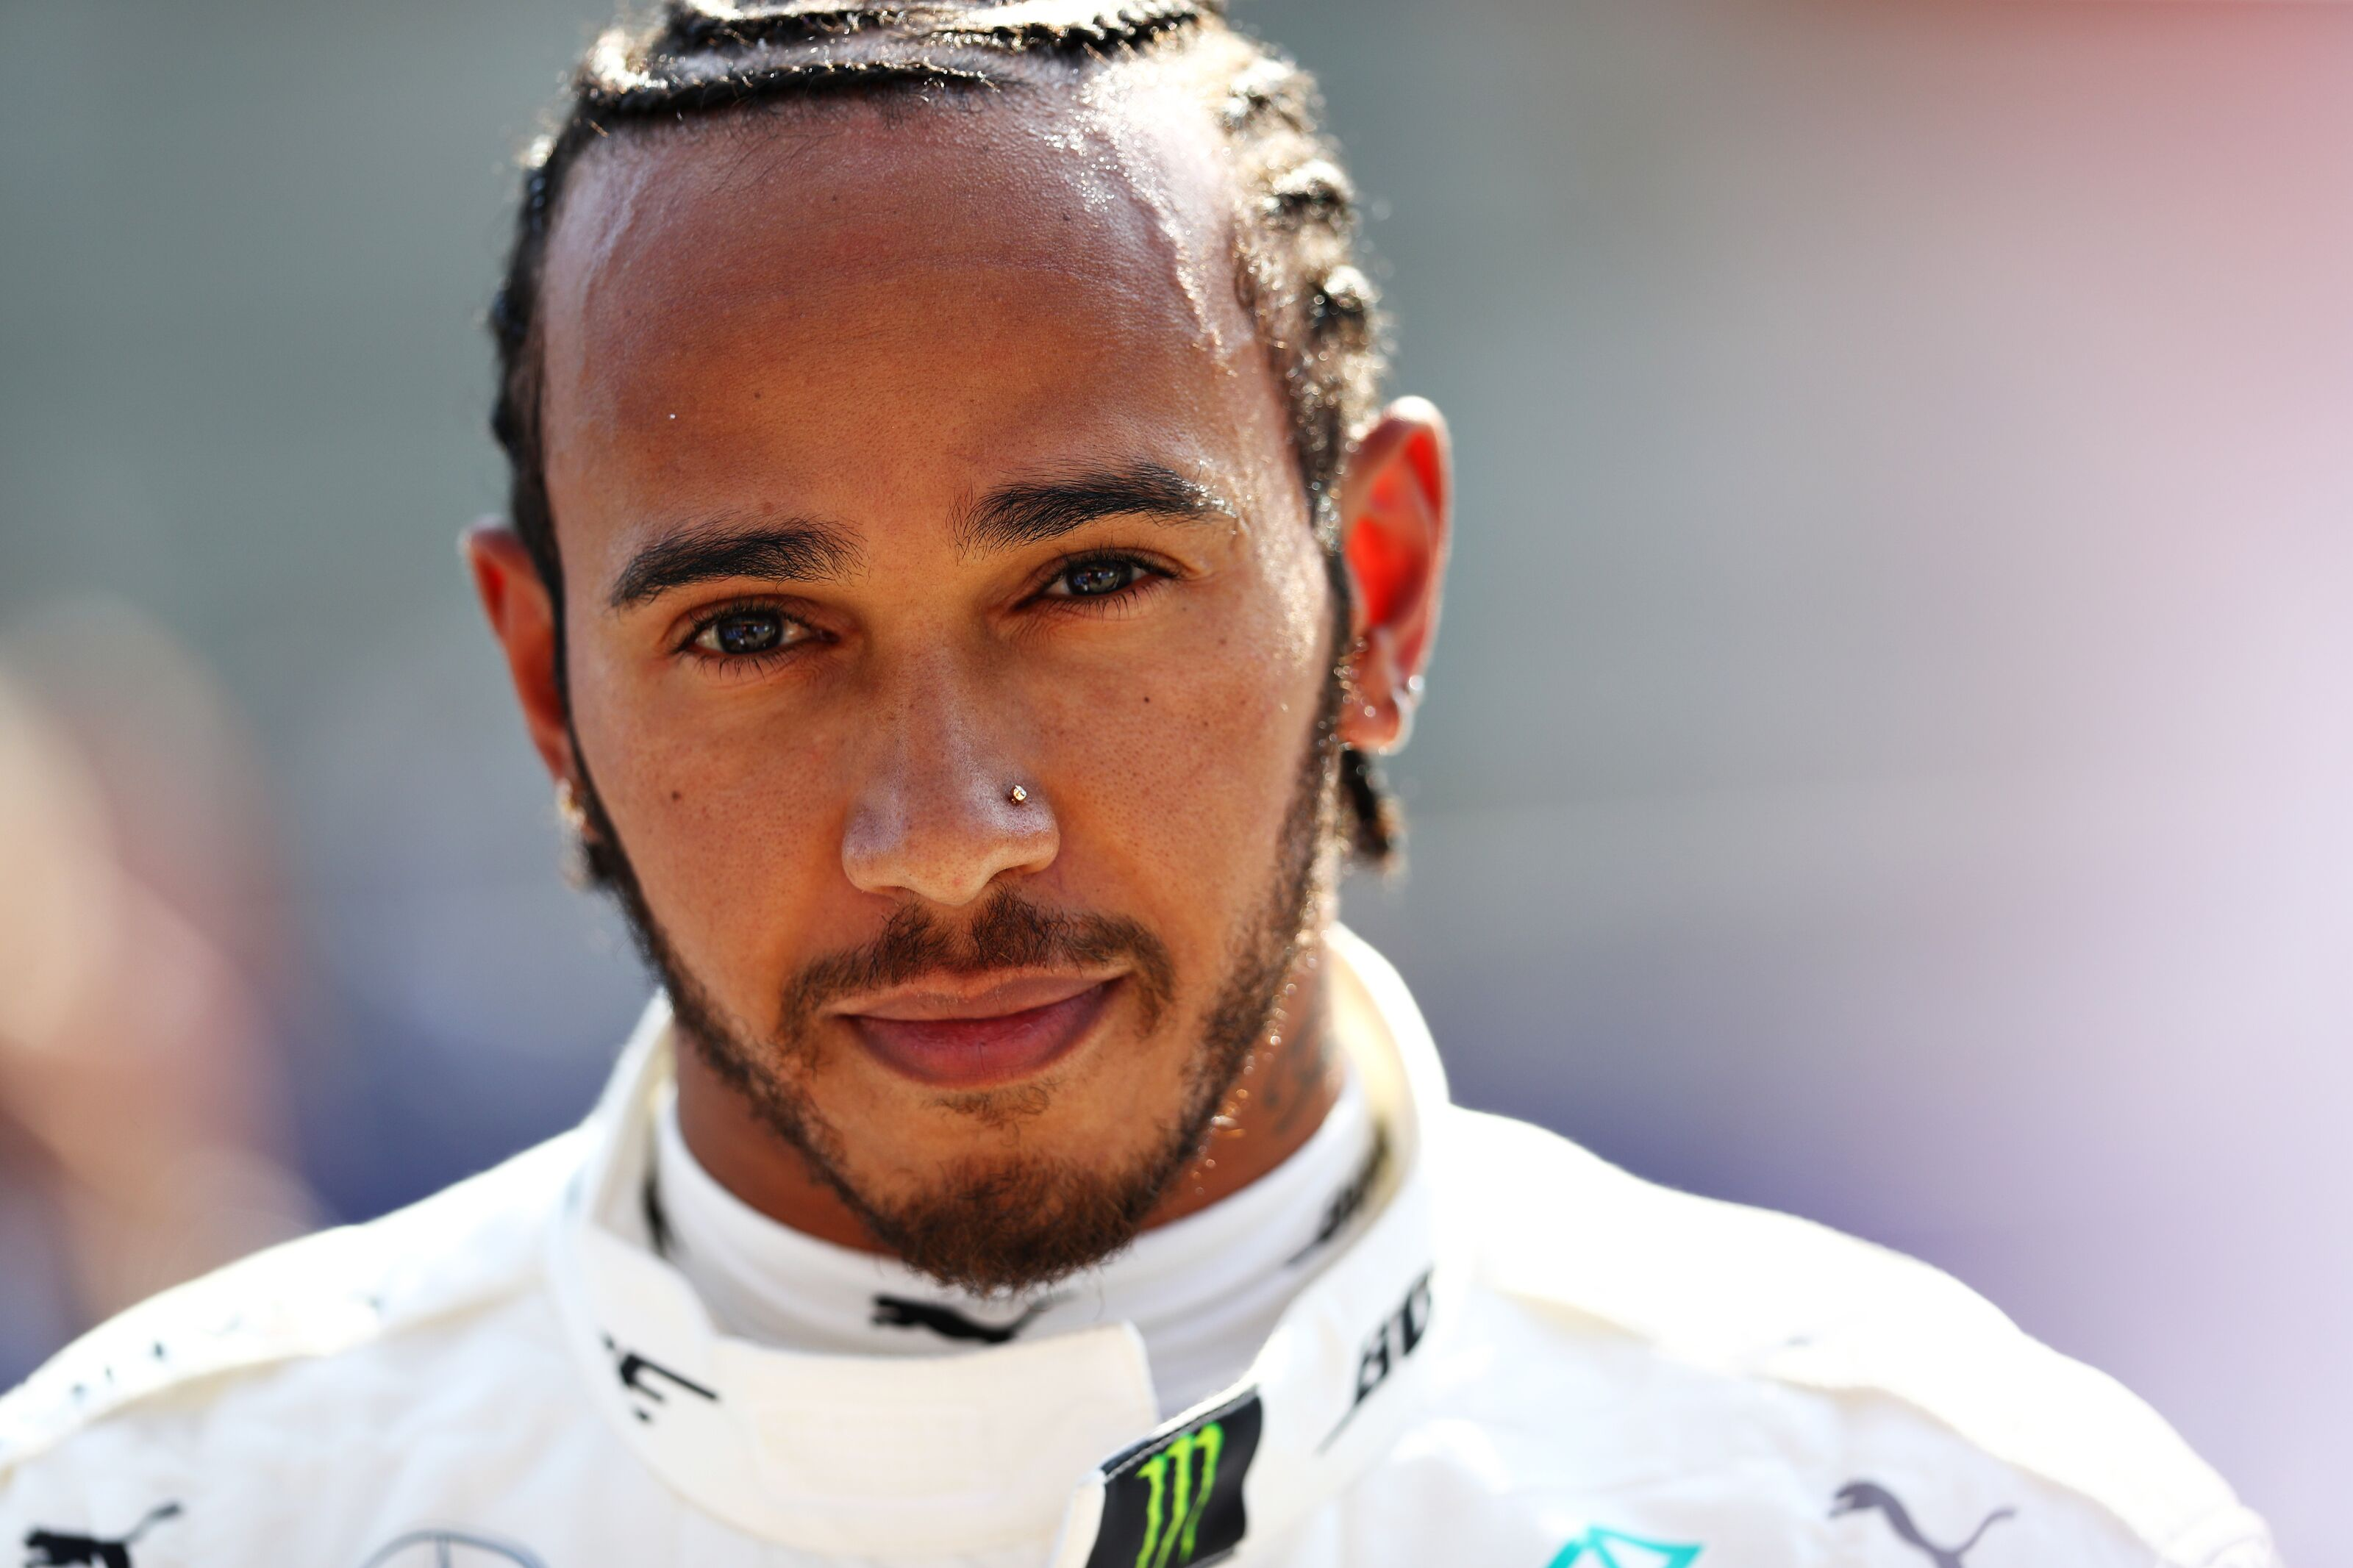 Formula 1: Lewis Hamilton's response to Jacques Villeneuve's baseless claim is pure gold